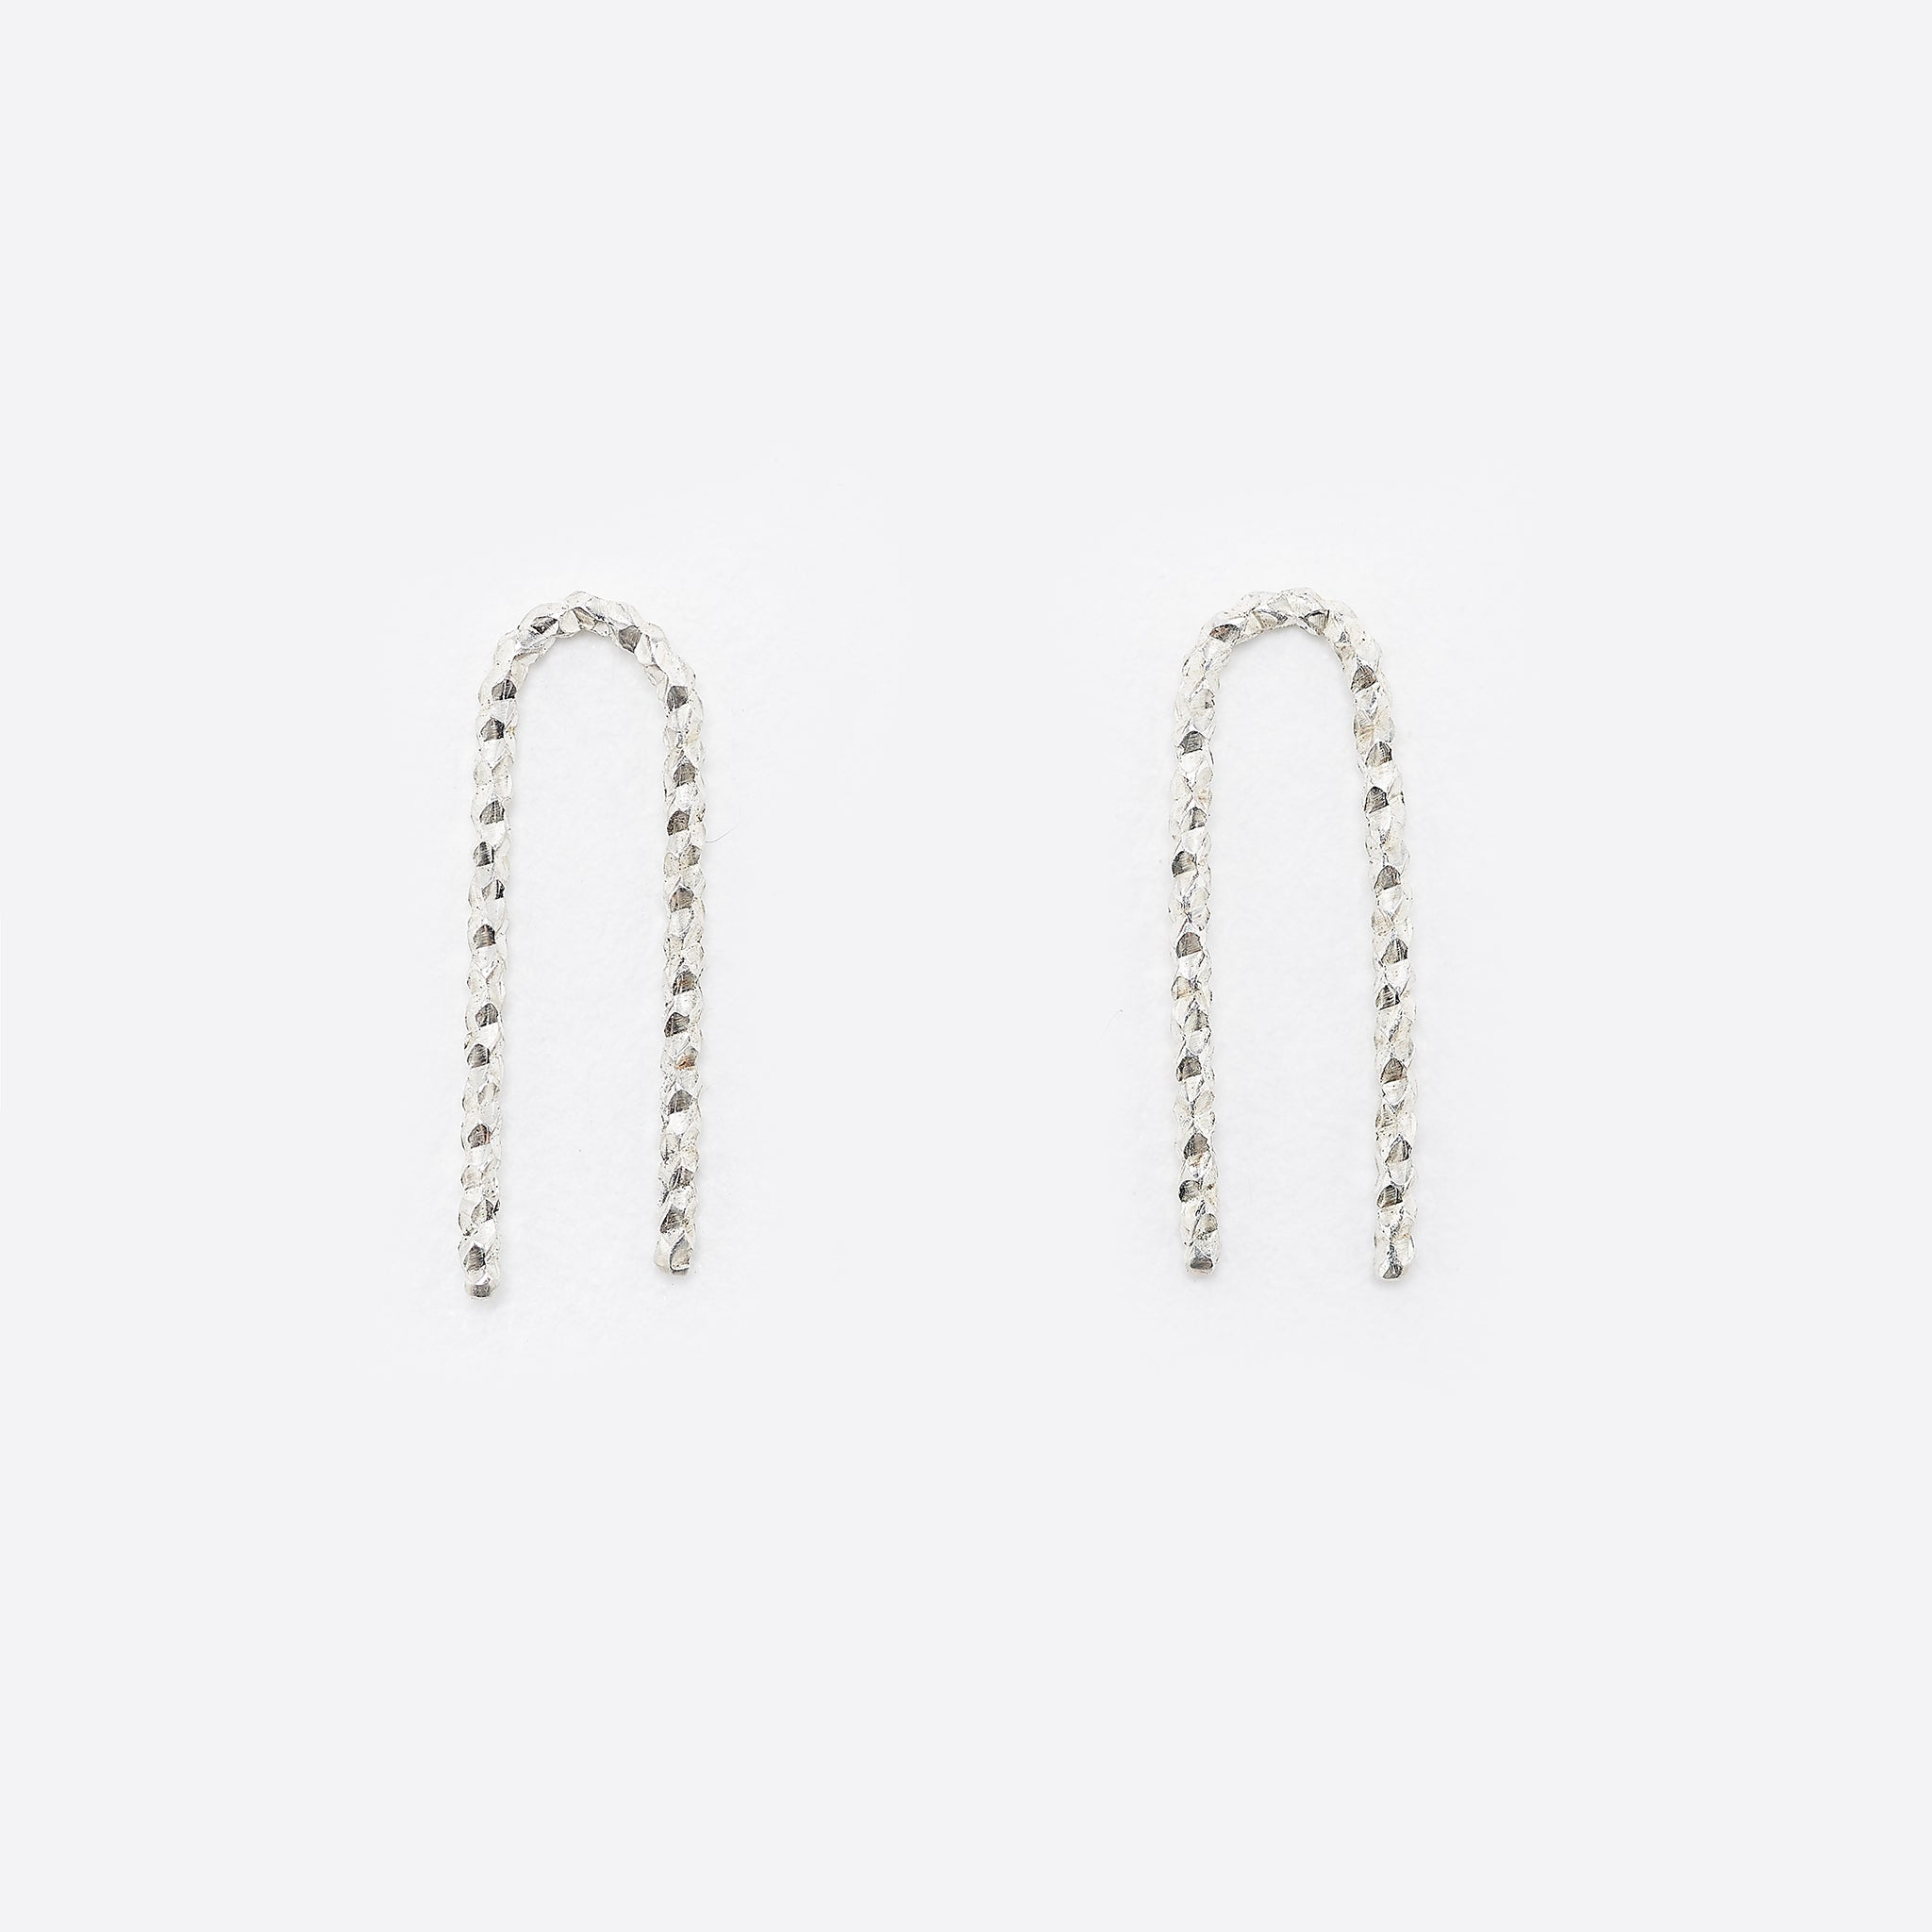 Nagle and Sisters Sparkle Staple Earrings in Silver